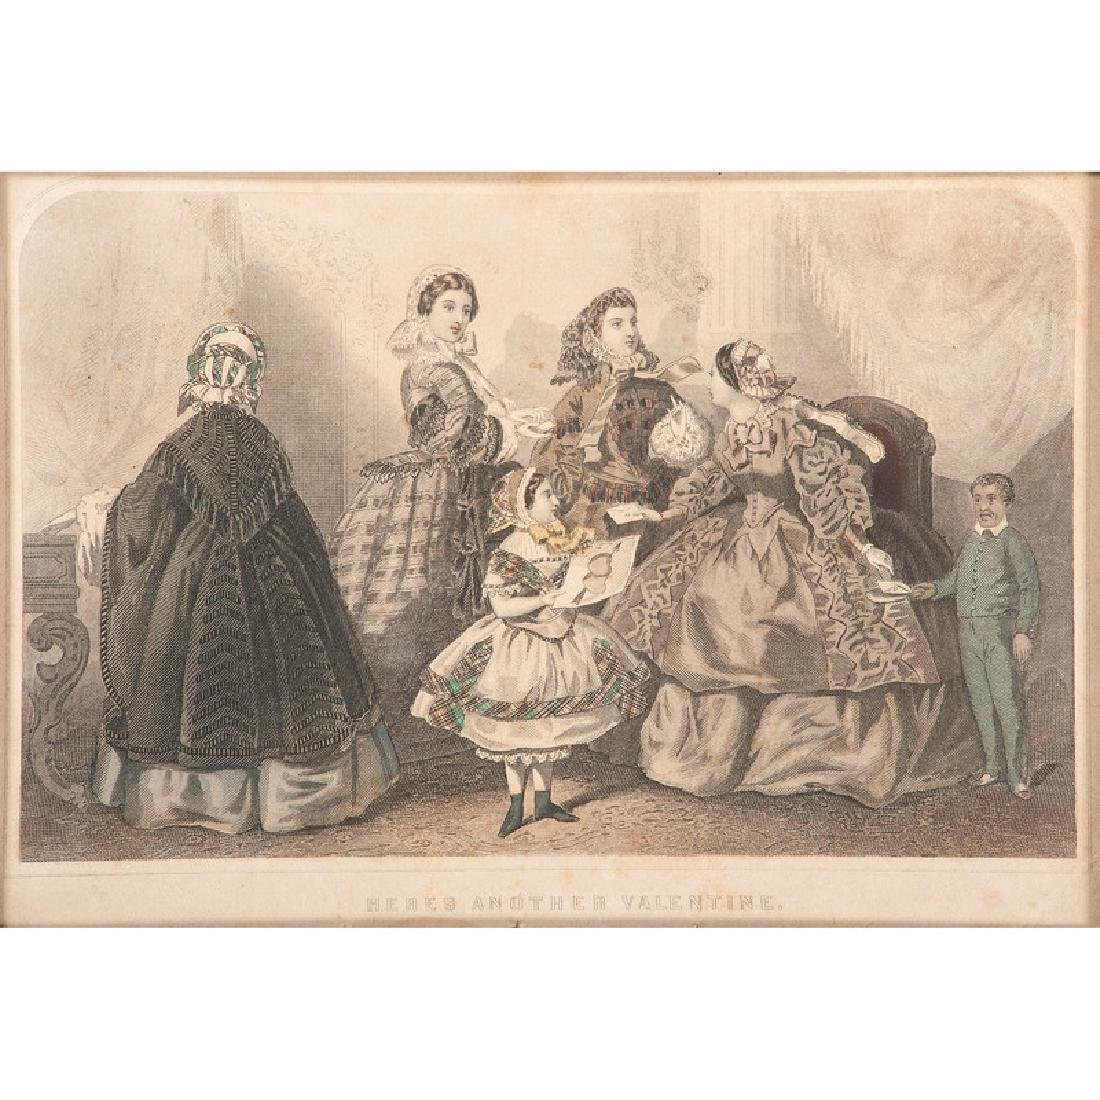 Hand-Colored Lithographs and Engravings